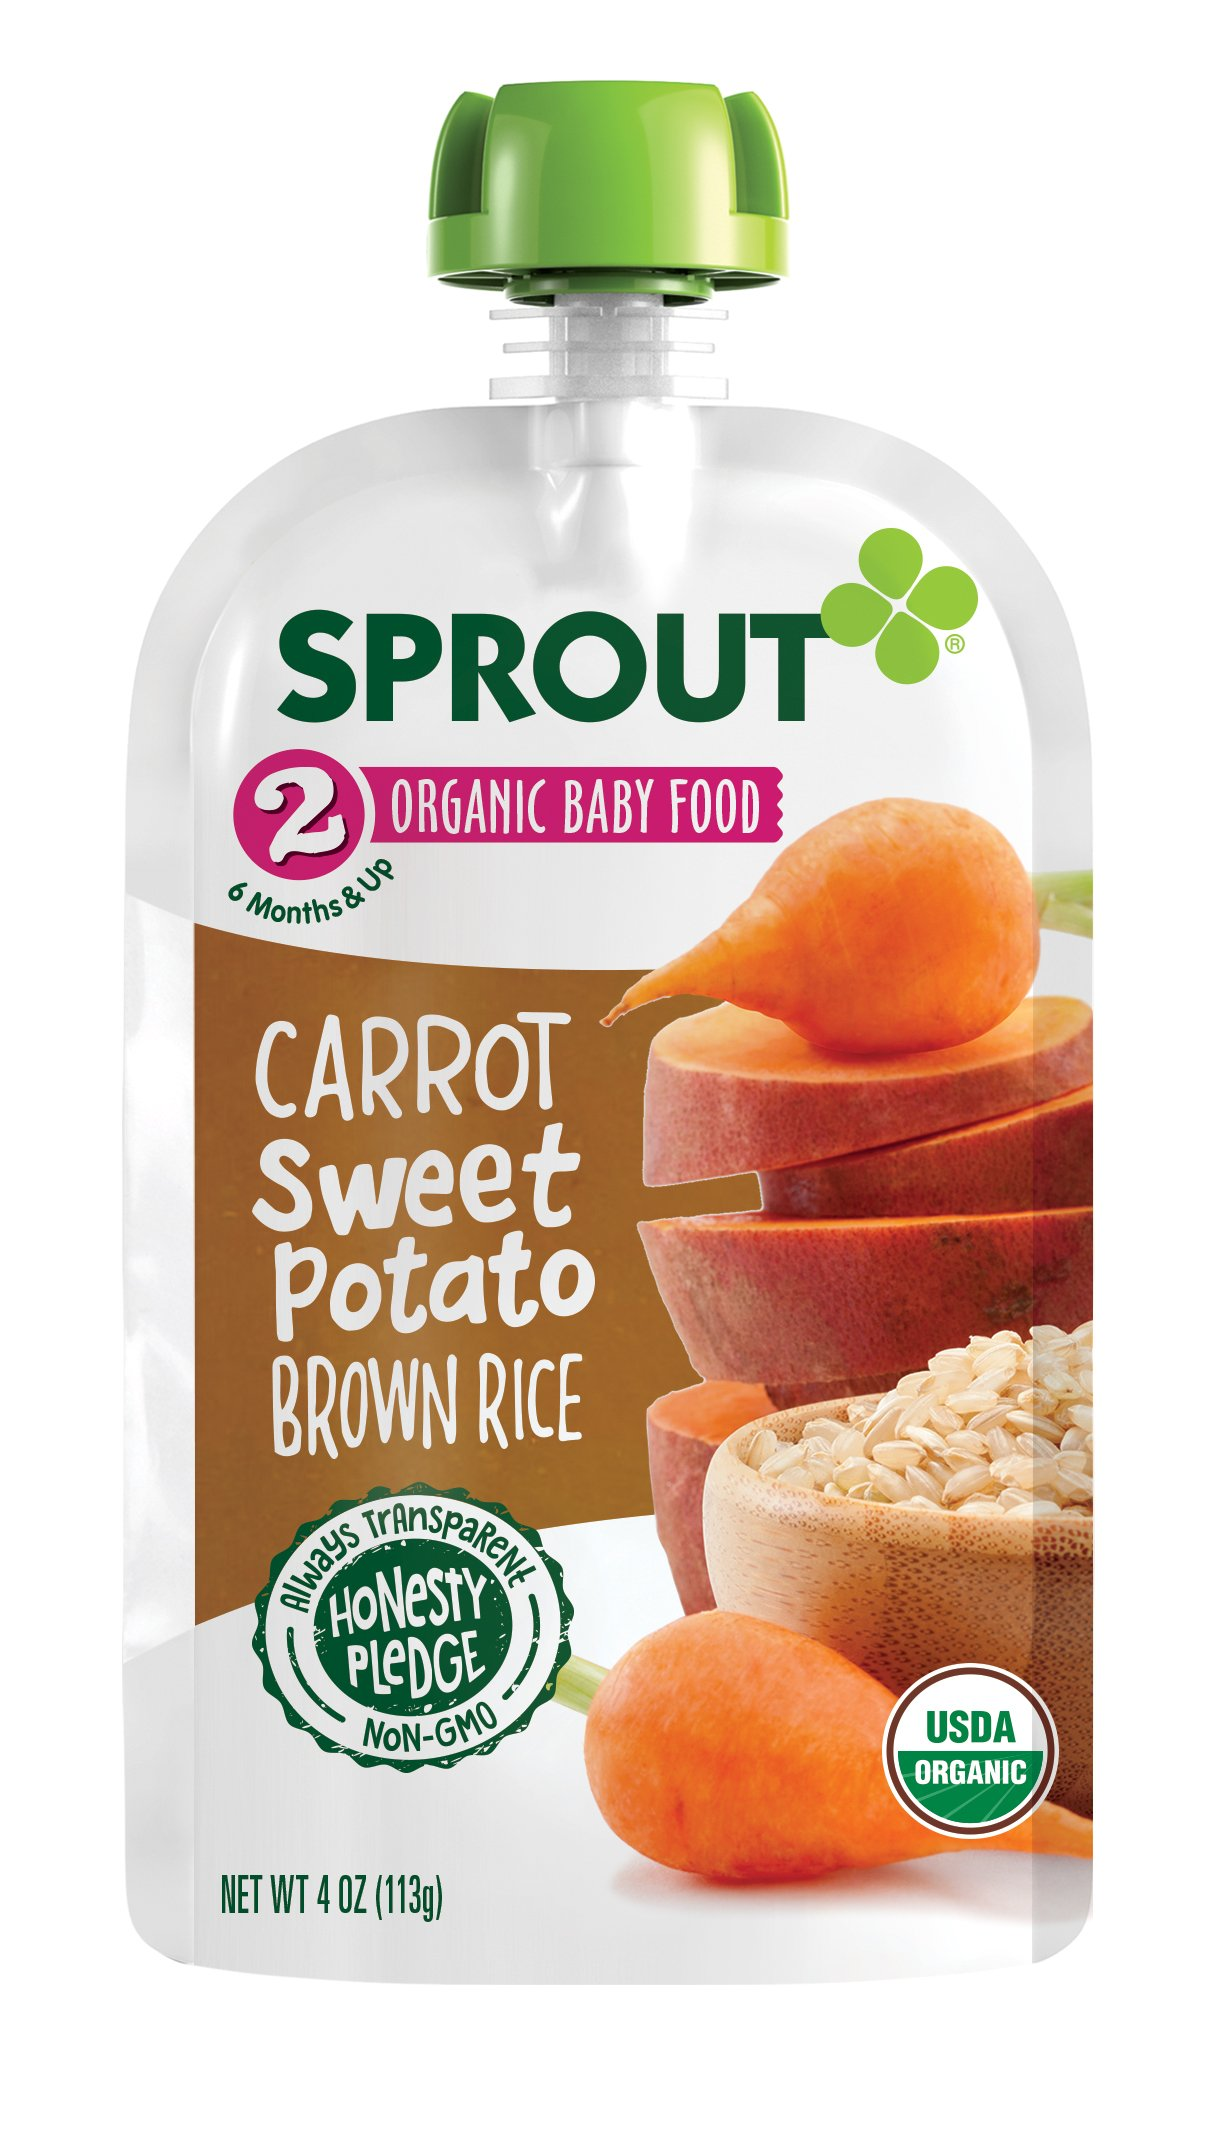 Sprout Organic Baby Food Pouches Stage 2 Sprout Baby Food, Carrot Sweet Potato Brown Rice, 4 Ounce (Pack of 5); USDA Organic, Non-GMO, Made with Whole Foods, No Preservatives, Nothing Artificial